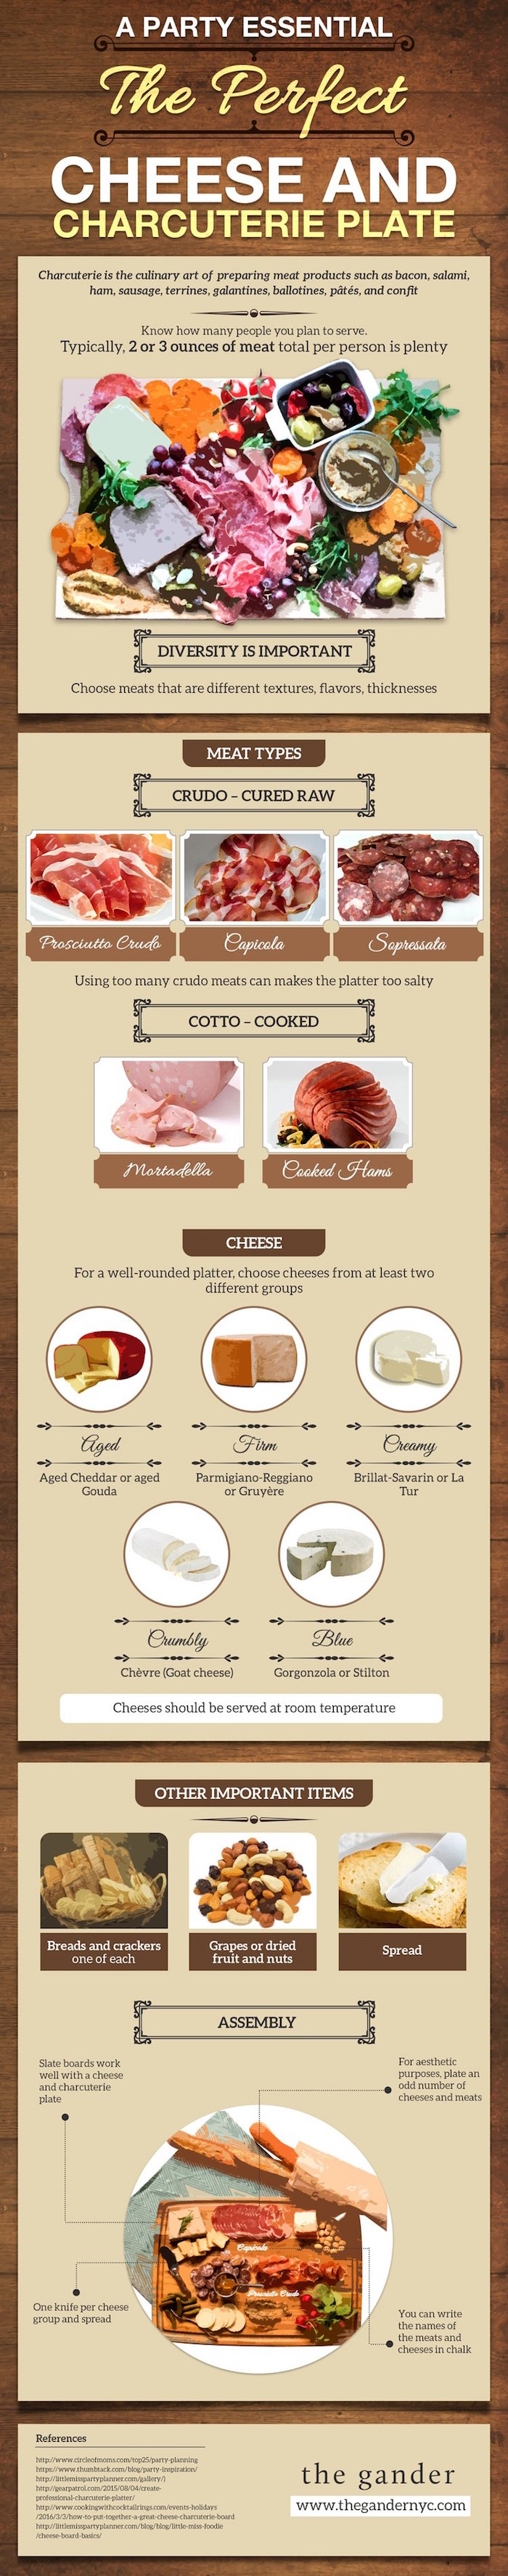 The Perfect Cheese and Charcuterie Plate on Kara's Party Ideas | KarasPartyIdeas.com (4)